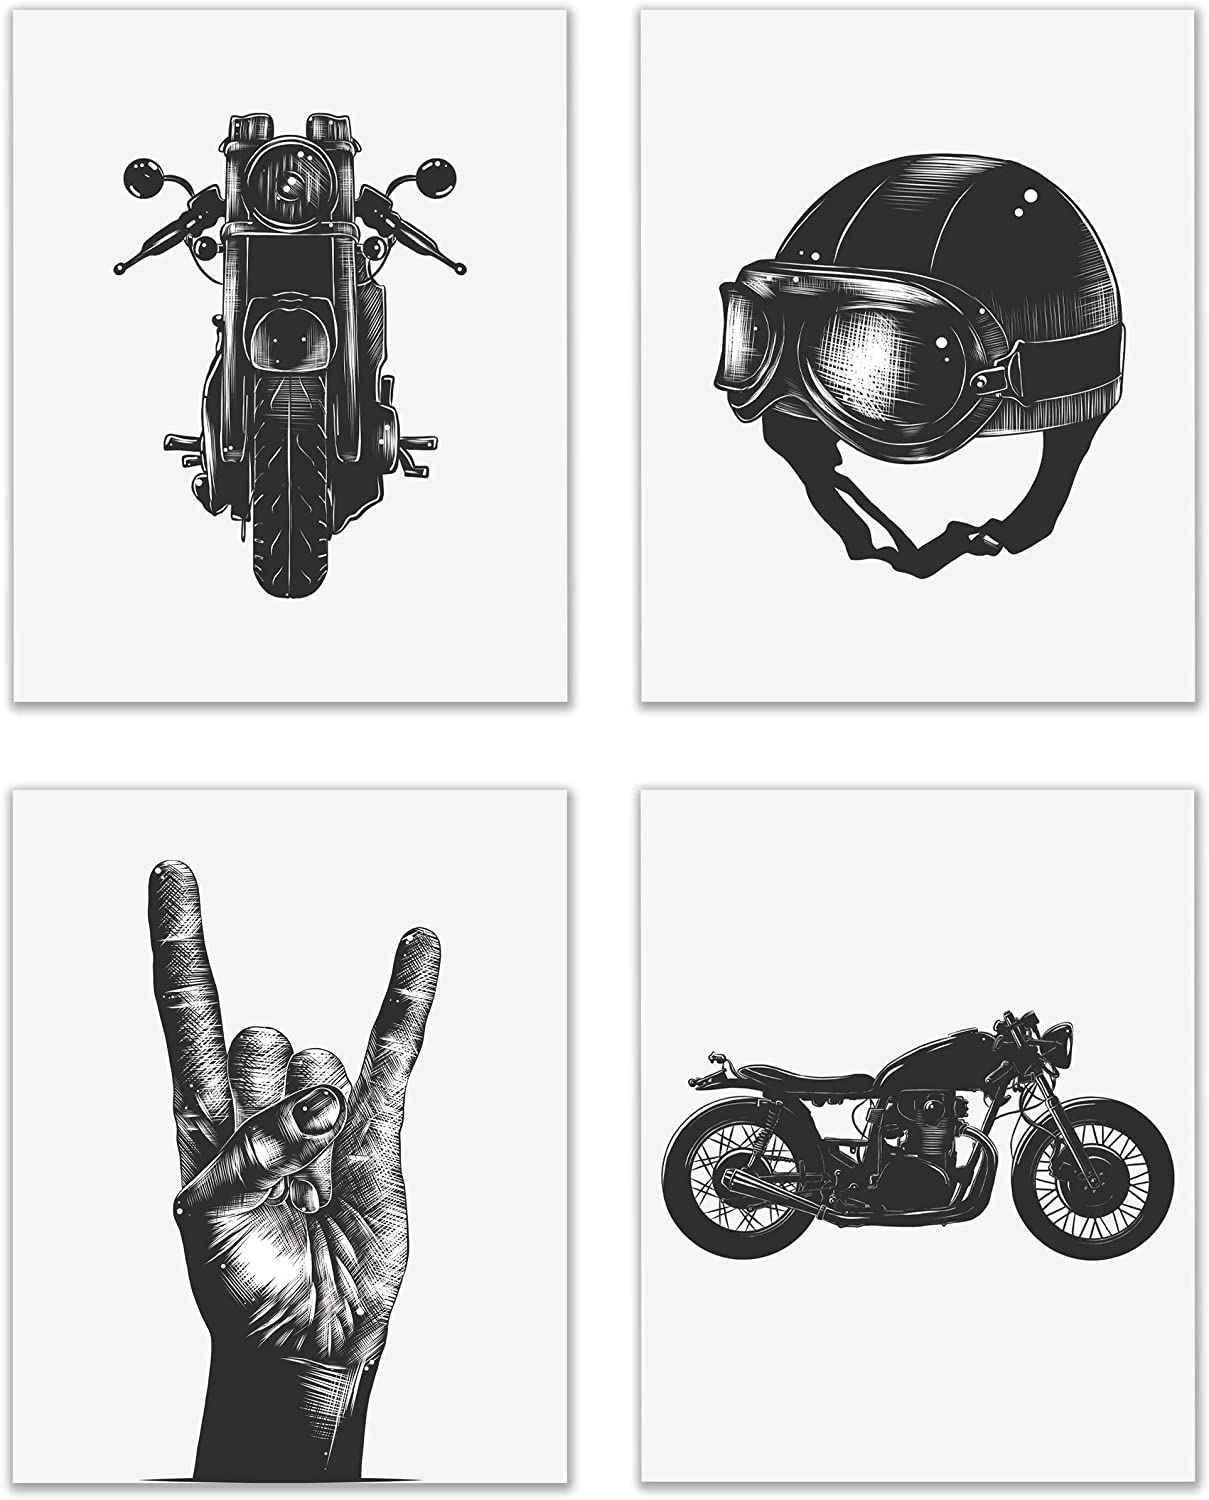 Motorcycle Cafe Vintage Wall Art Decor Prints - Set Of 4 (8x10) Inch Poster Photos